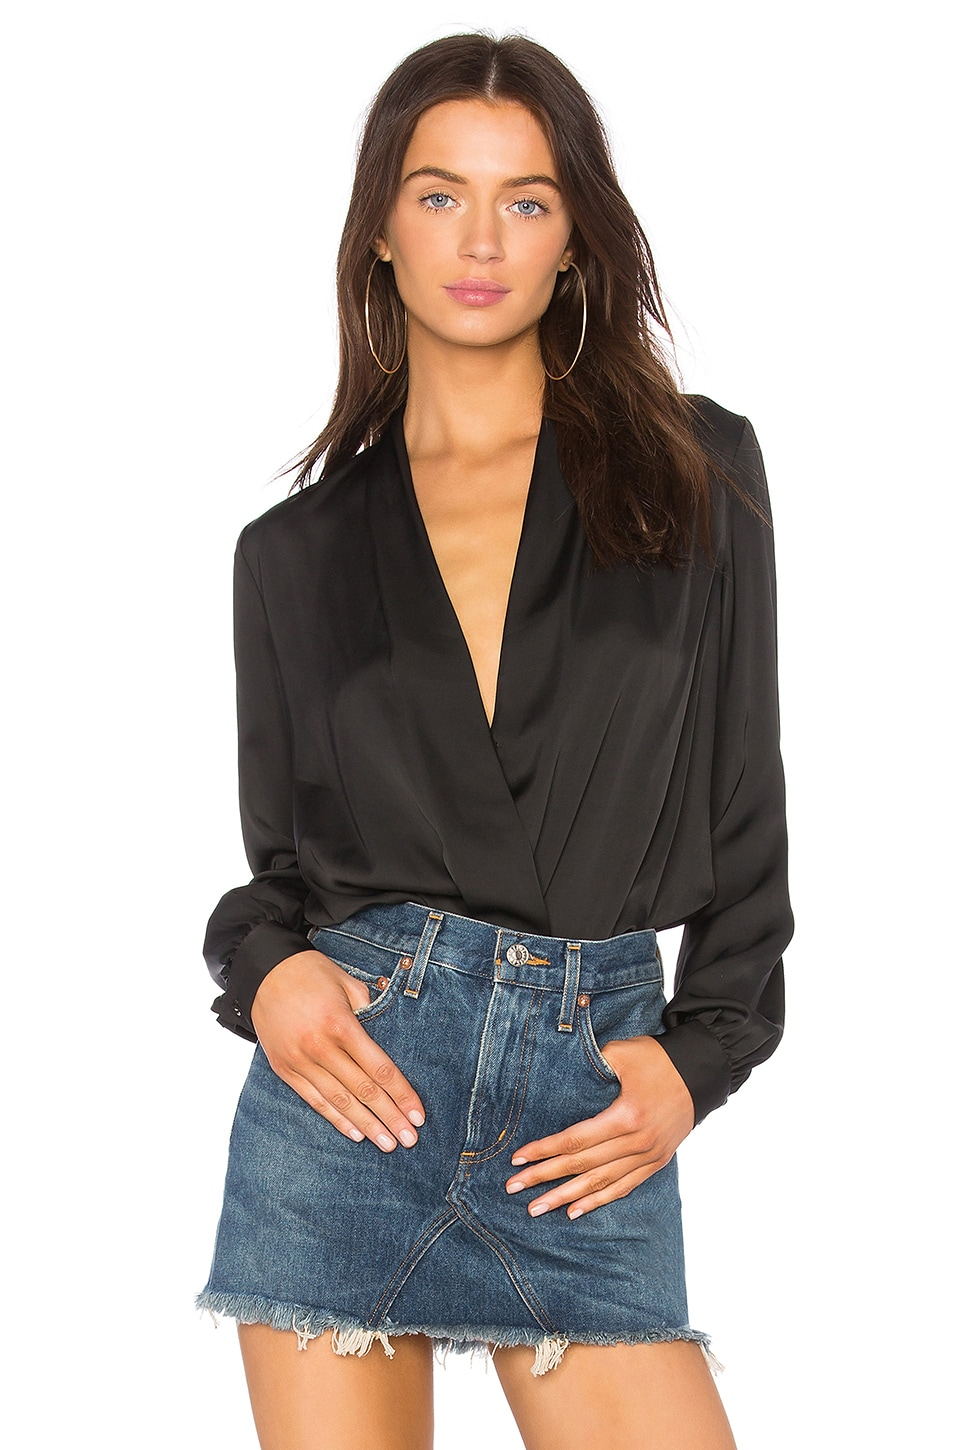 L'Academie The Long Sleeve Bodysuit in Black